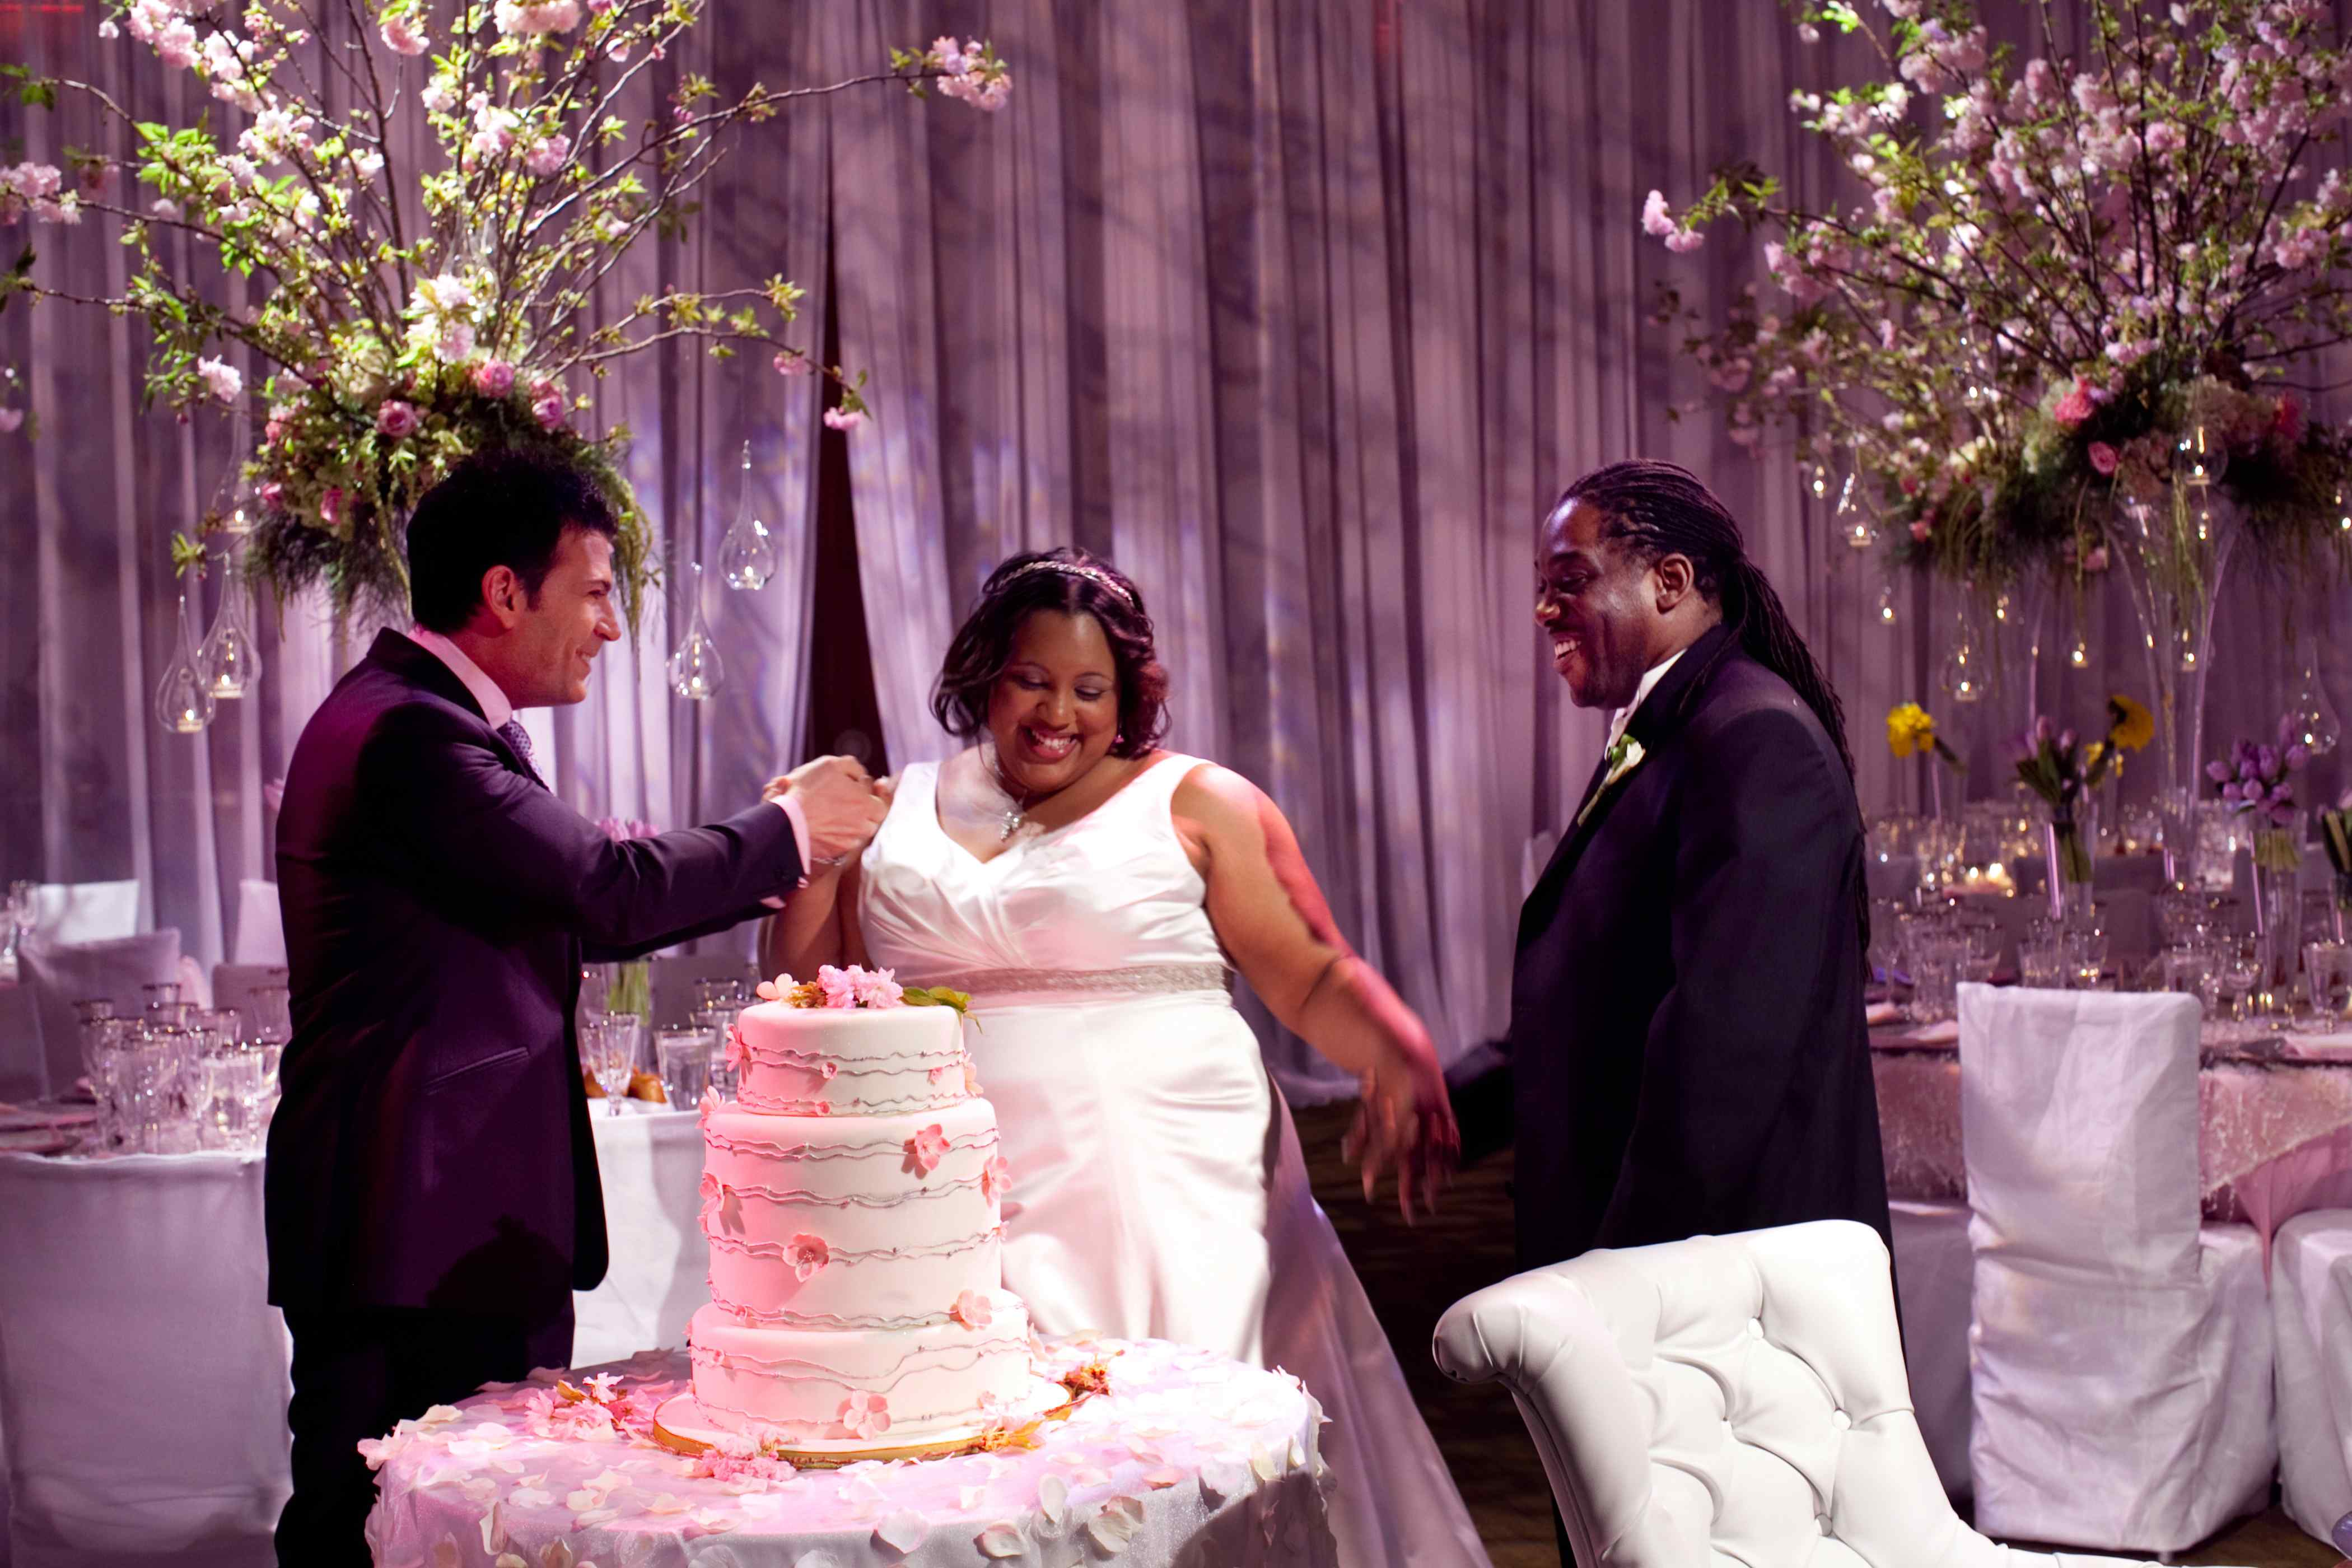 My Favorite Photo Out Of The Bunch David Tutera